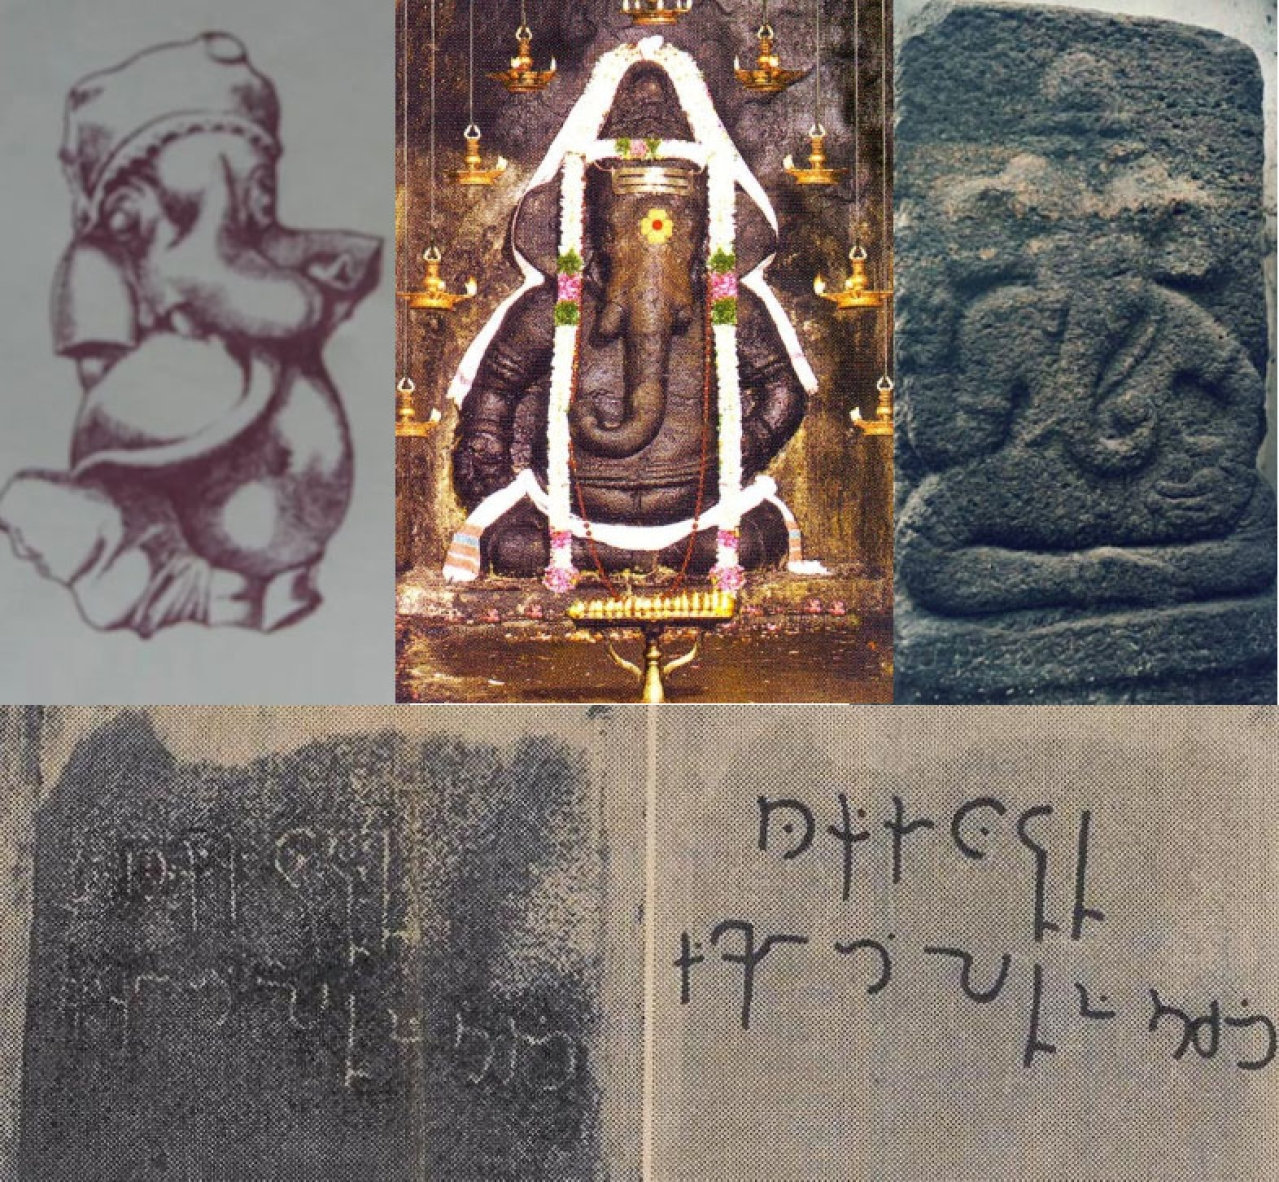 Ganesha from Veerapuram (Andhra) 50 BCE, Pillayarpatti (sixth century CE), Ala-gramam Ganesha (fourth century CE), and below is the Pillayarpatti inscription, in which dots were discovered for the first time in Tamil. (Varalaaru.com)